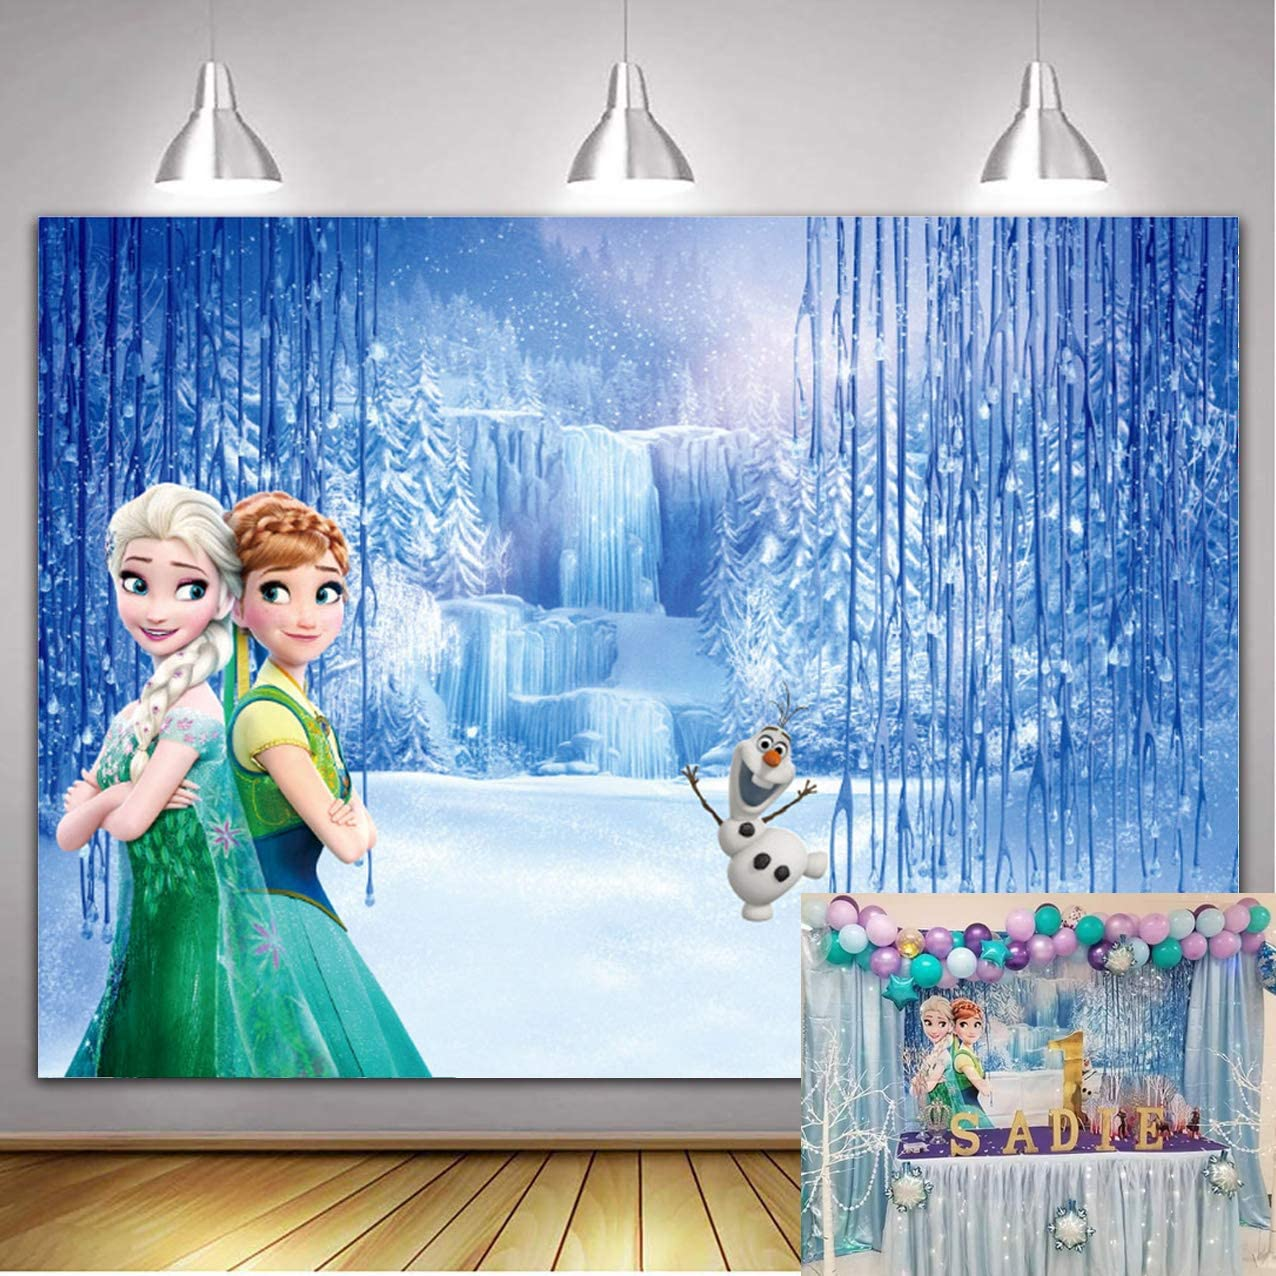 1st Birthday Backdrops for Photography Girl 7x5ft Elsa and Anna Princess Fairytale Frozen Ice Castle Backdrop Baby Shower for Girls Personalized Name Photo Banner Background Tabletop